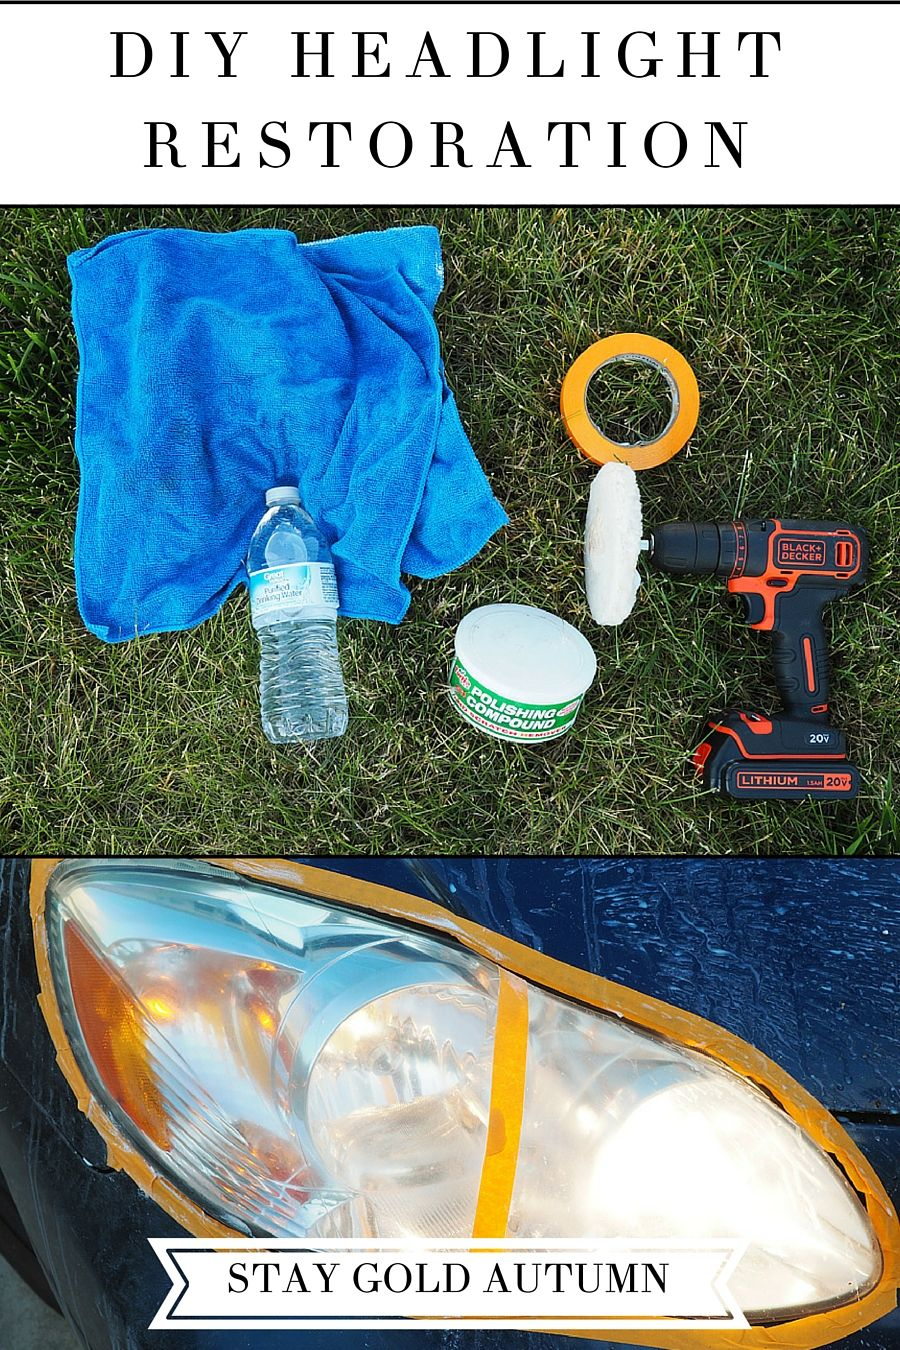 Diy headlight restoration headlight restoration how to